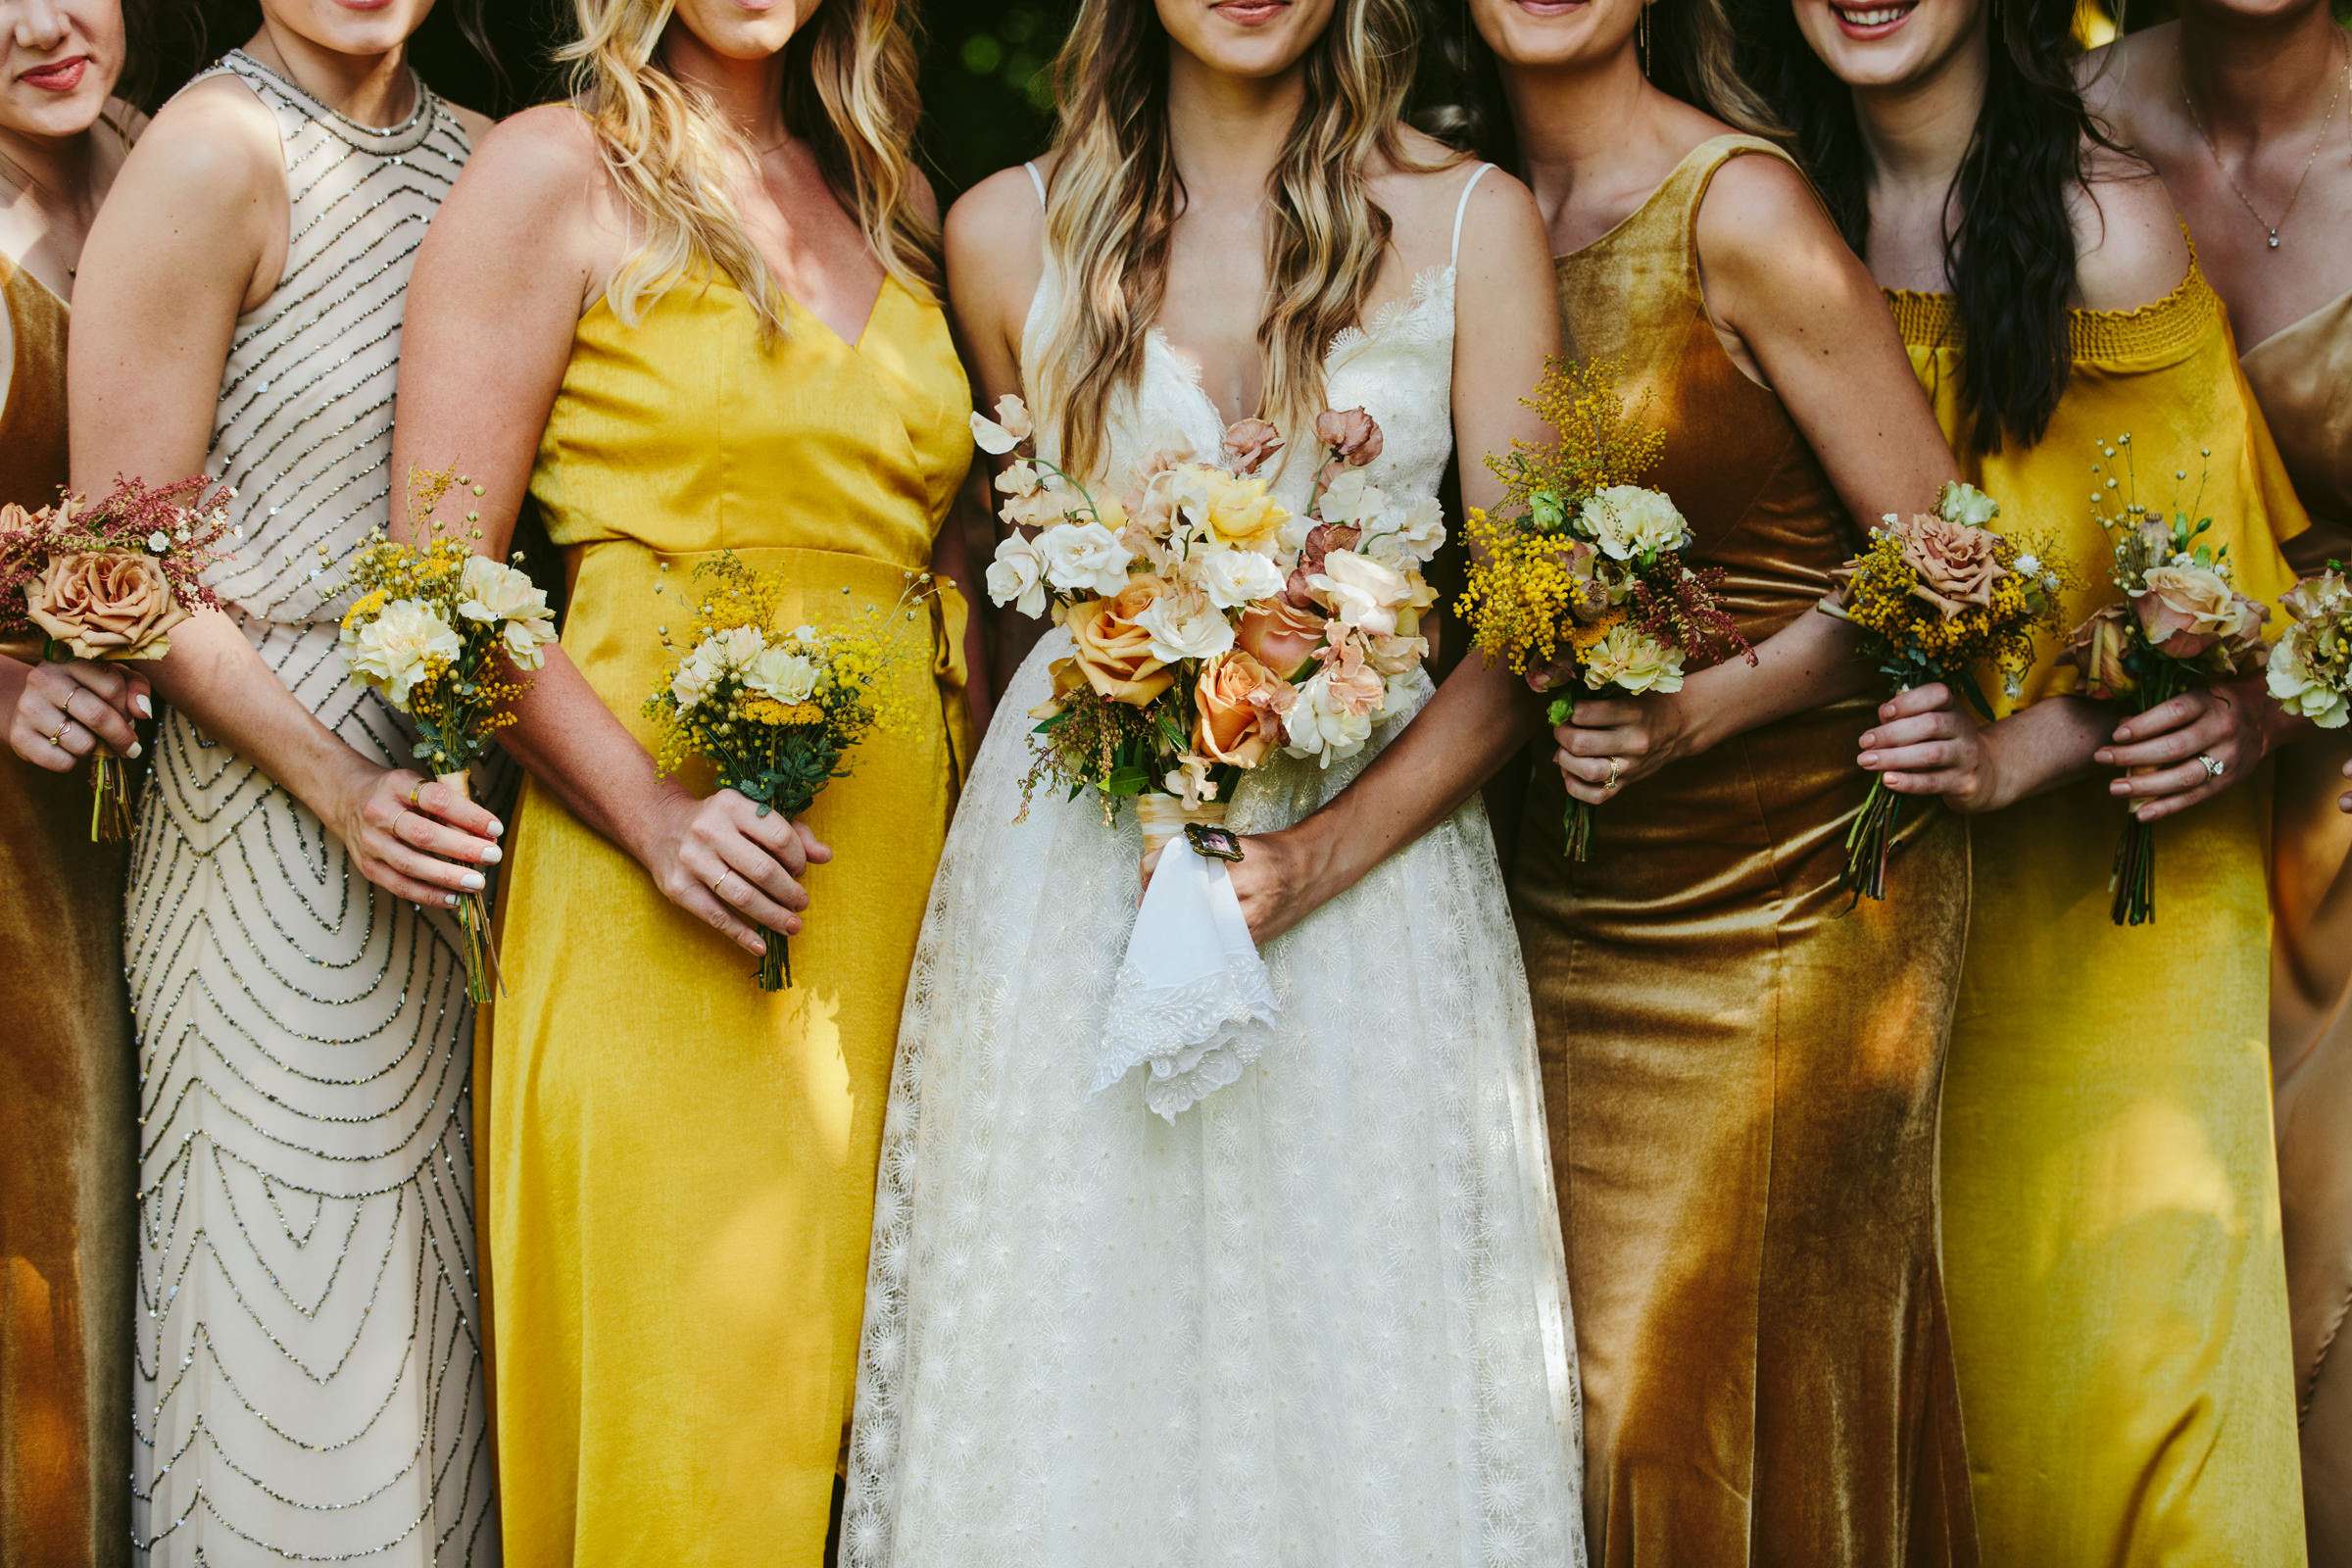 bride and bridesmaids with gold dresses and rose bouquets - photo by Melia Lucida